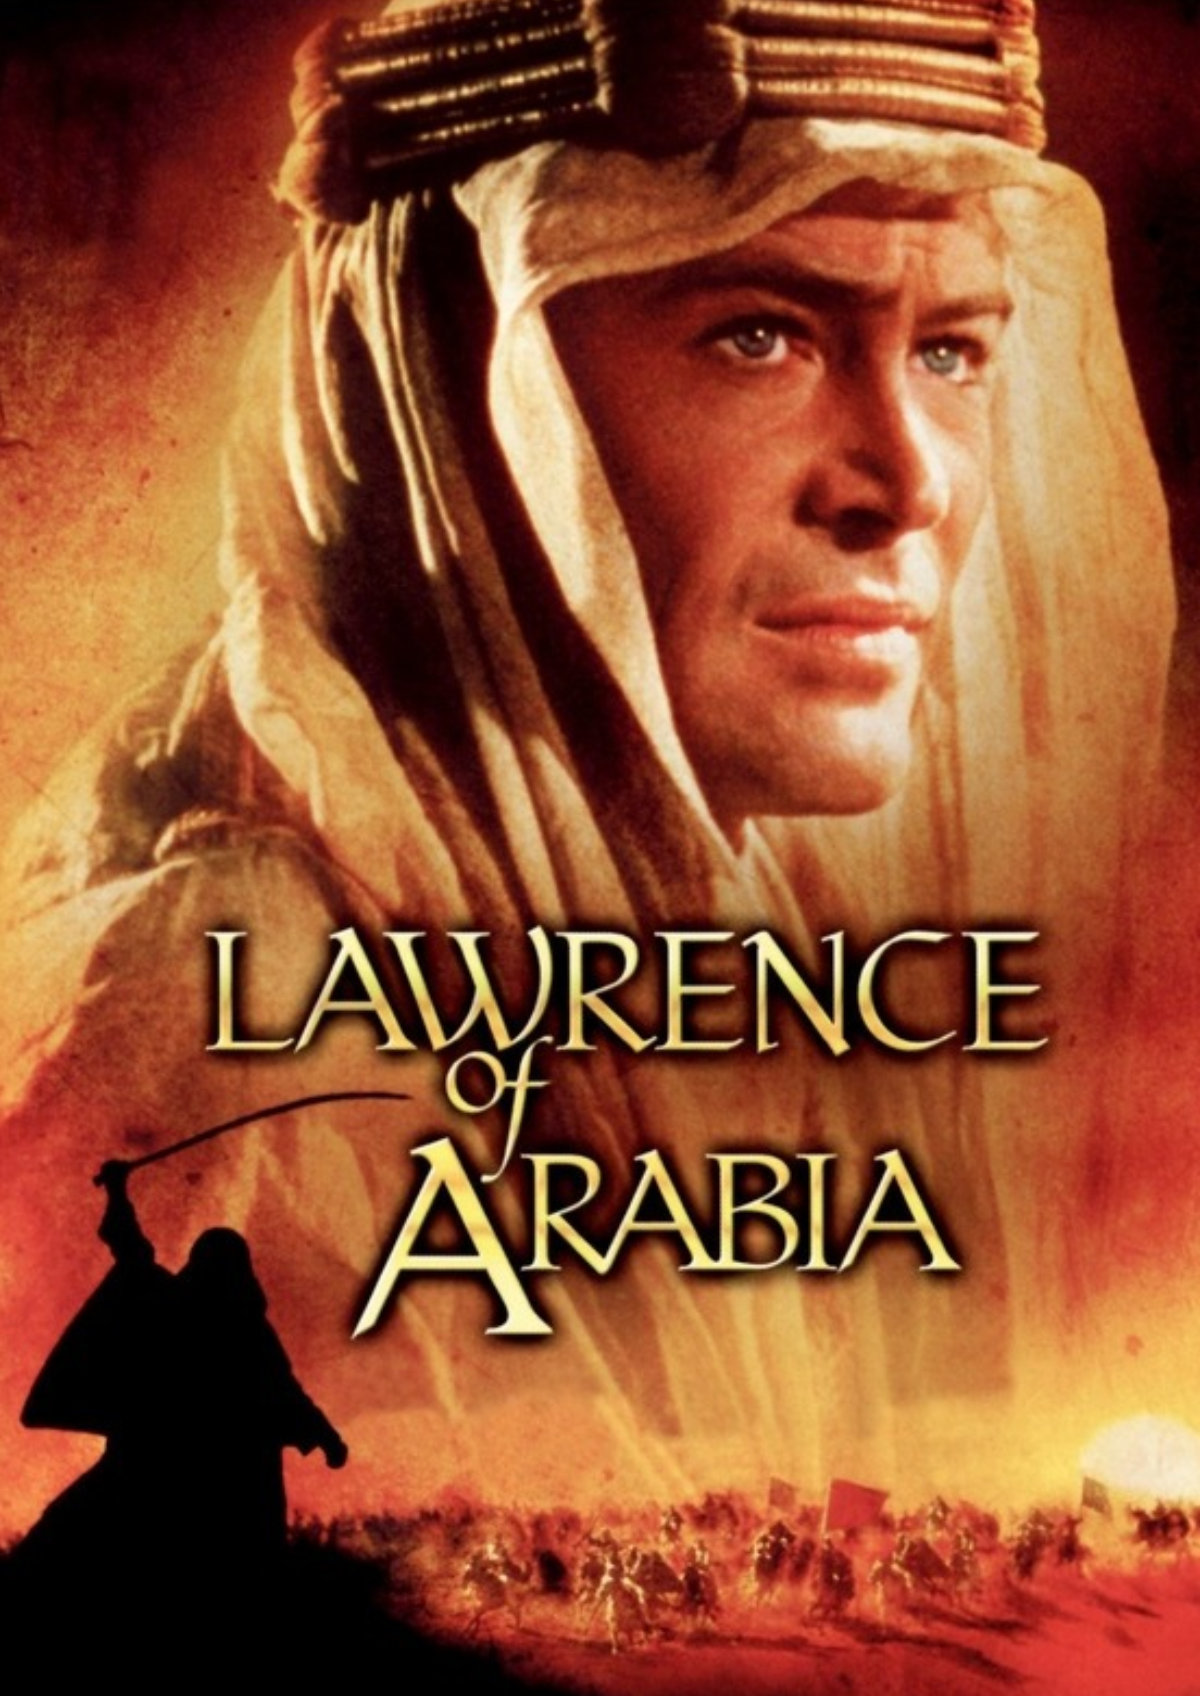 'Lawrence of Arabia' movie poster